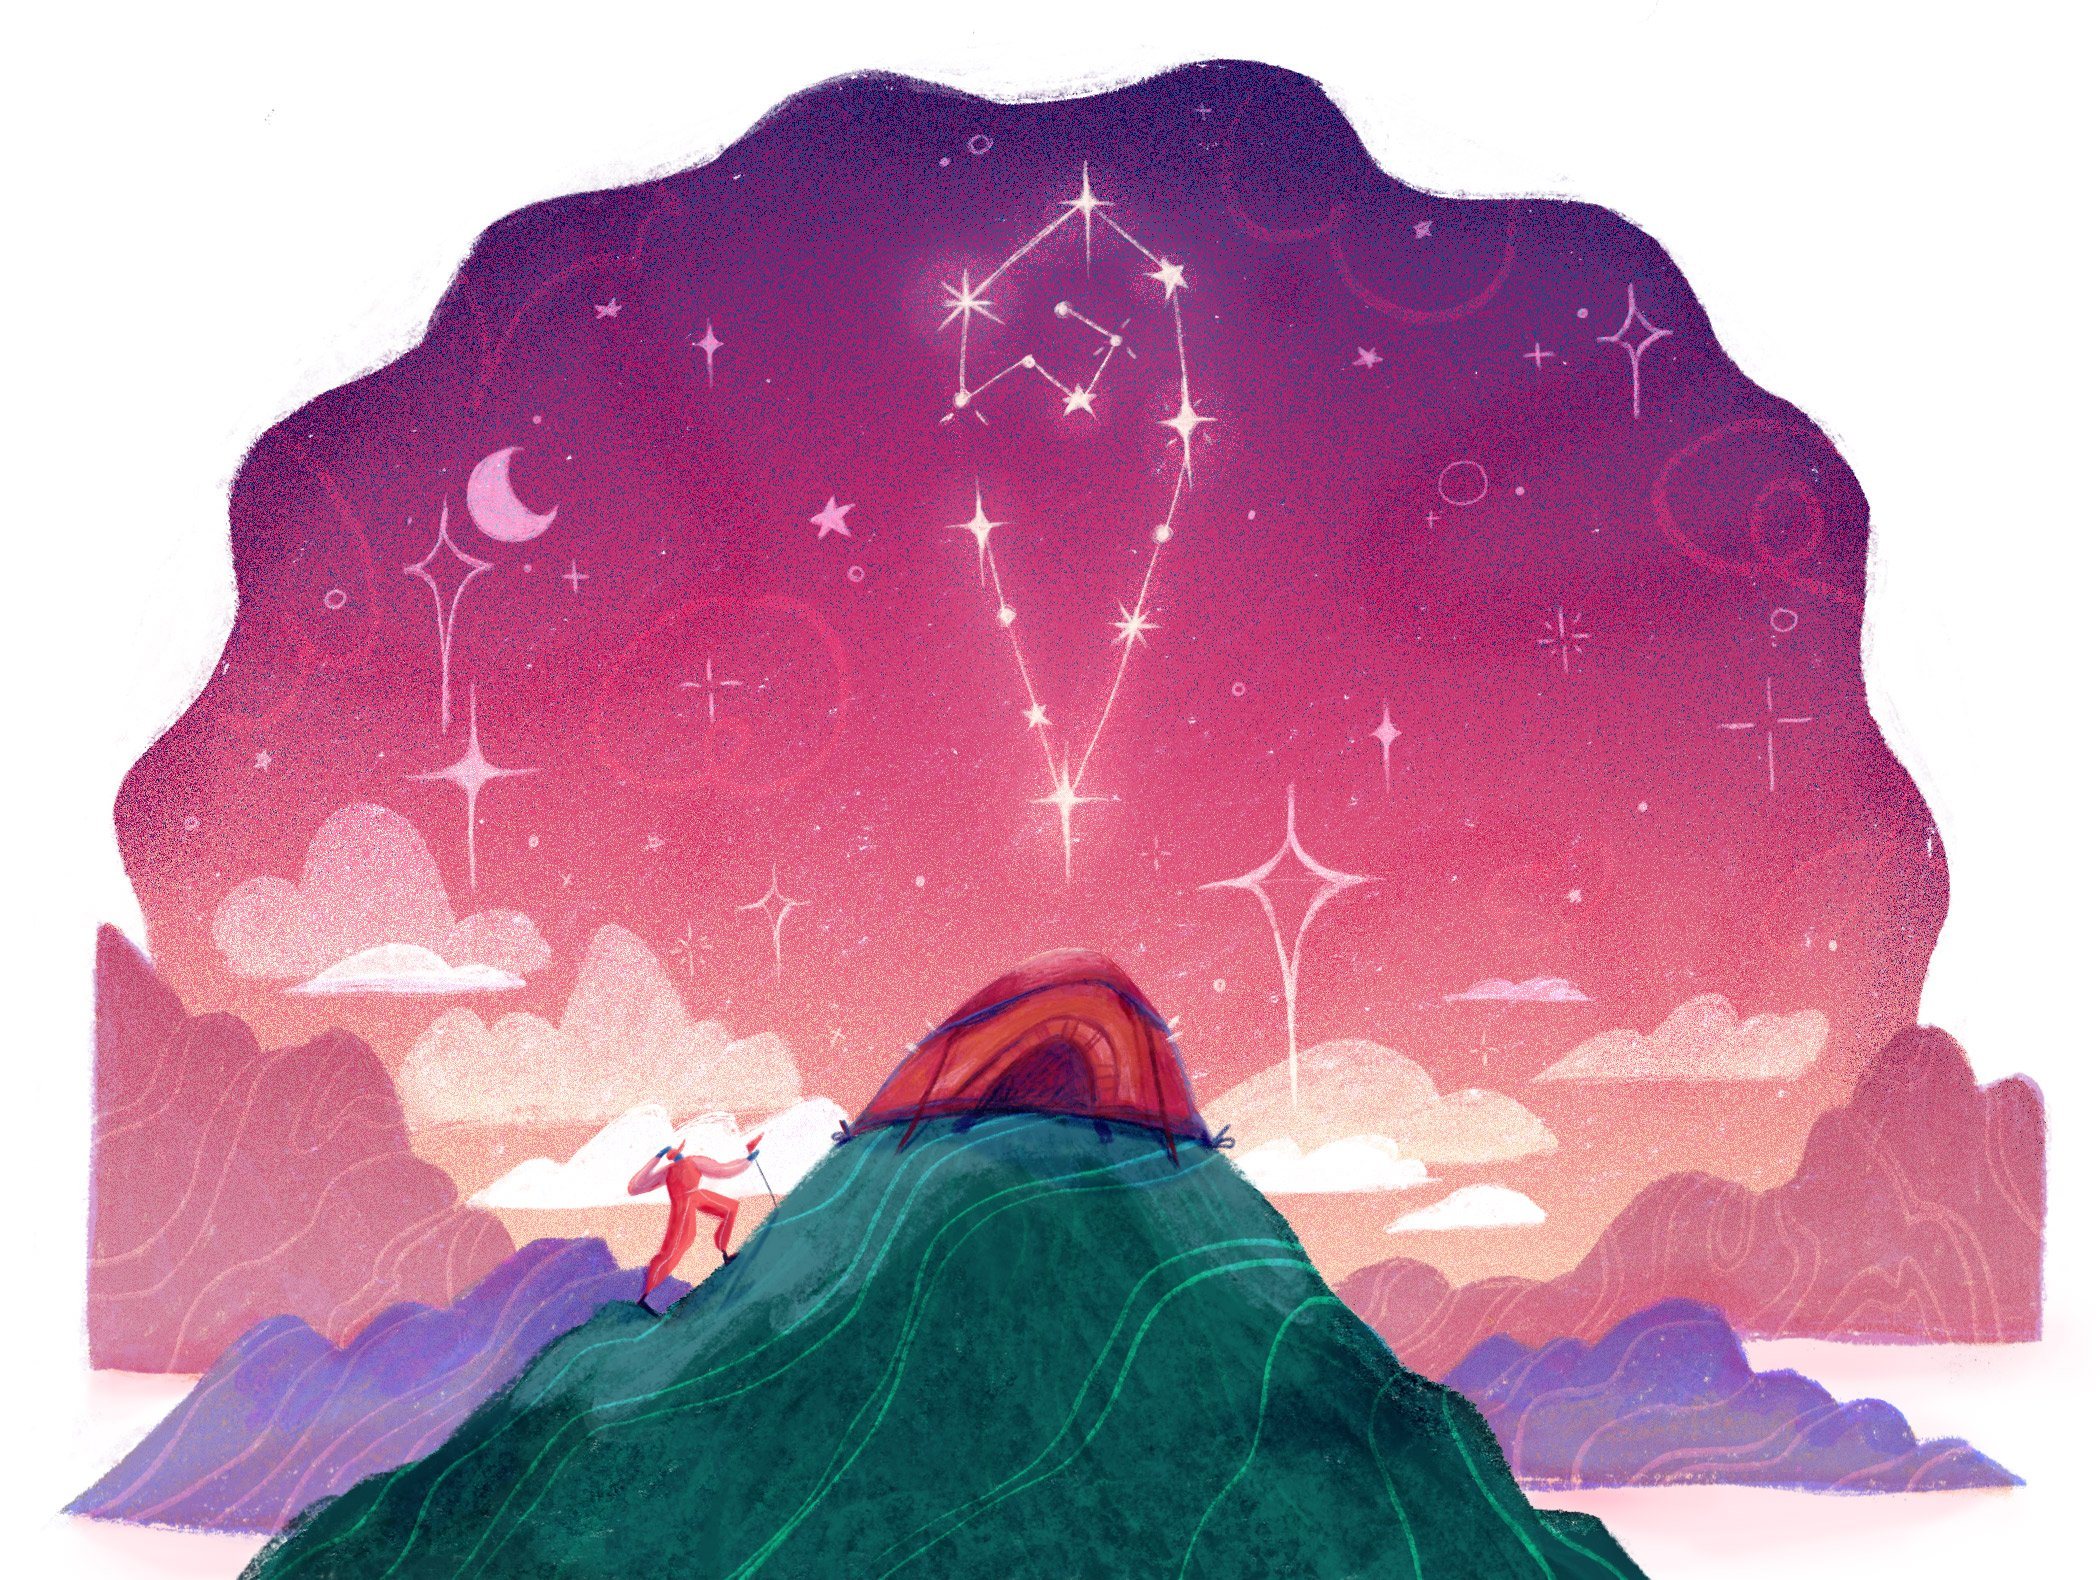 Illustration of a character camping out under the night sky